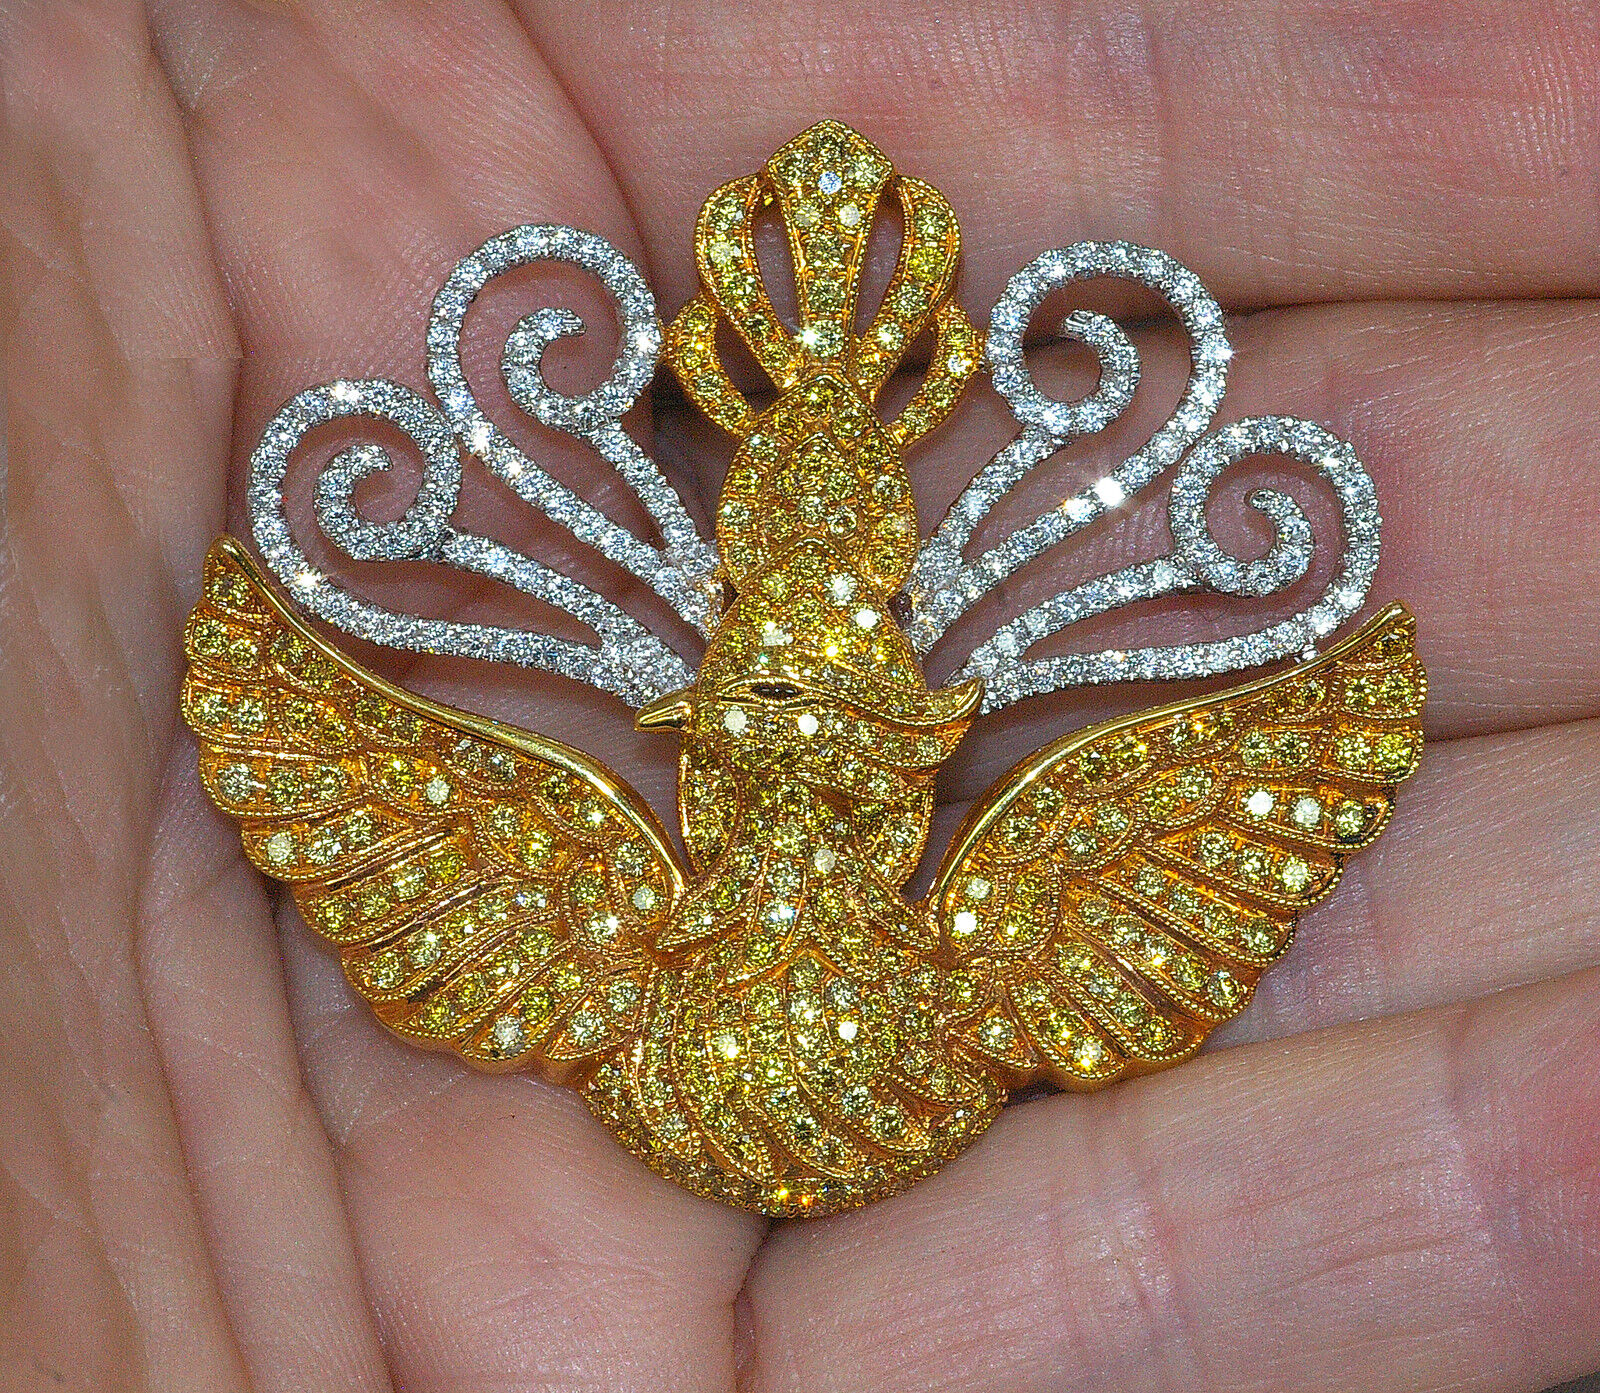 18K COUTURE 3.8c FANCY YELLOW WHITE DIAMOND ANGEL PHOENIX BIRD PENDANT BROOCH